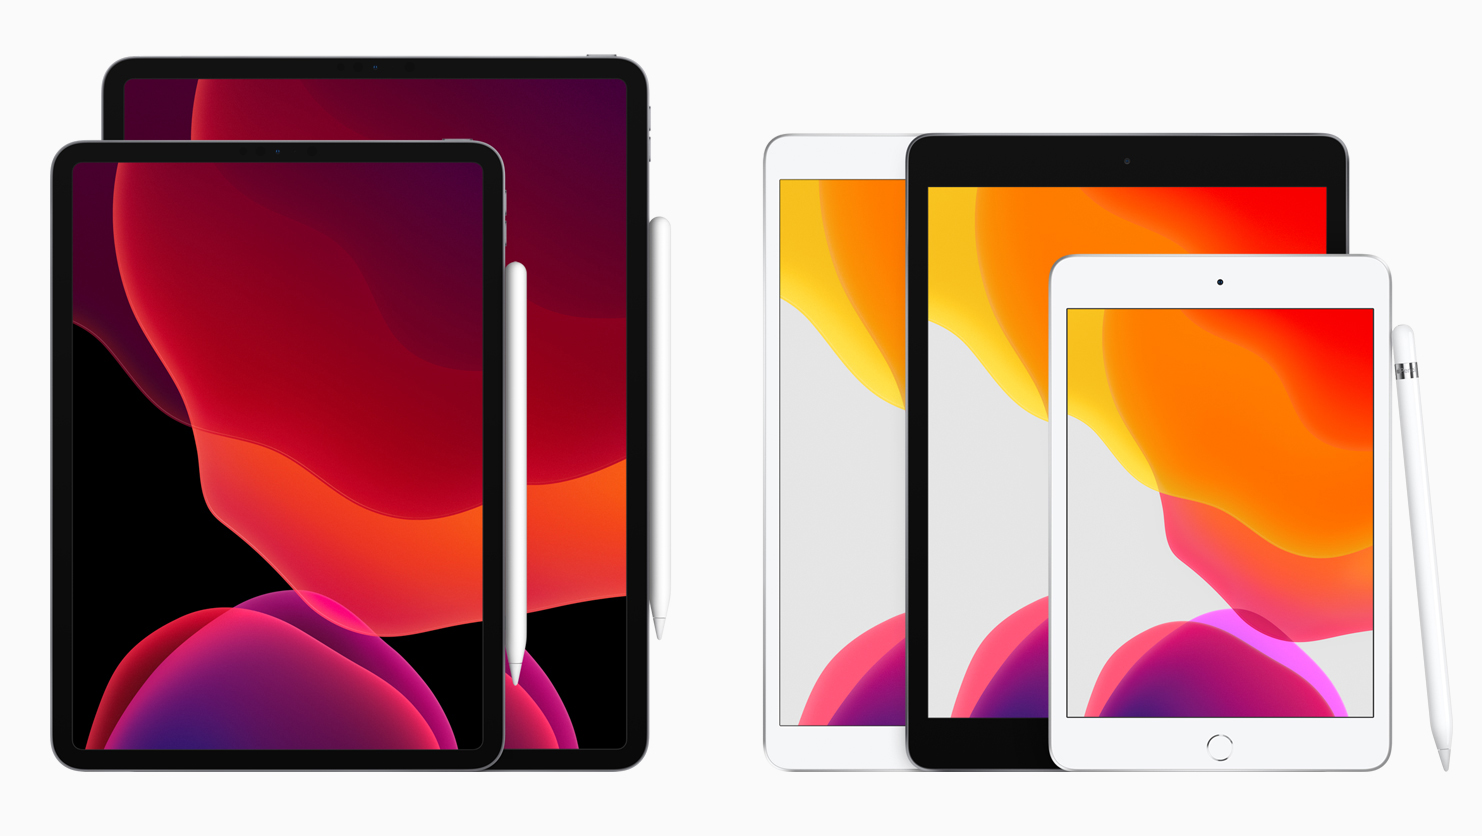 ipad 7th generation release date